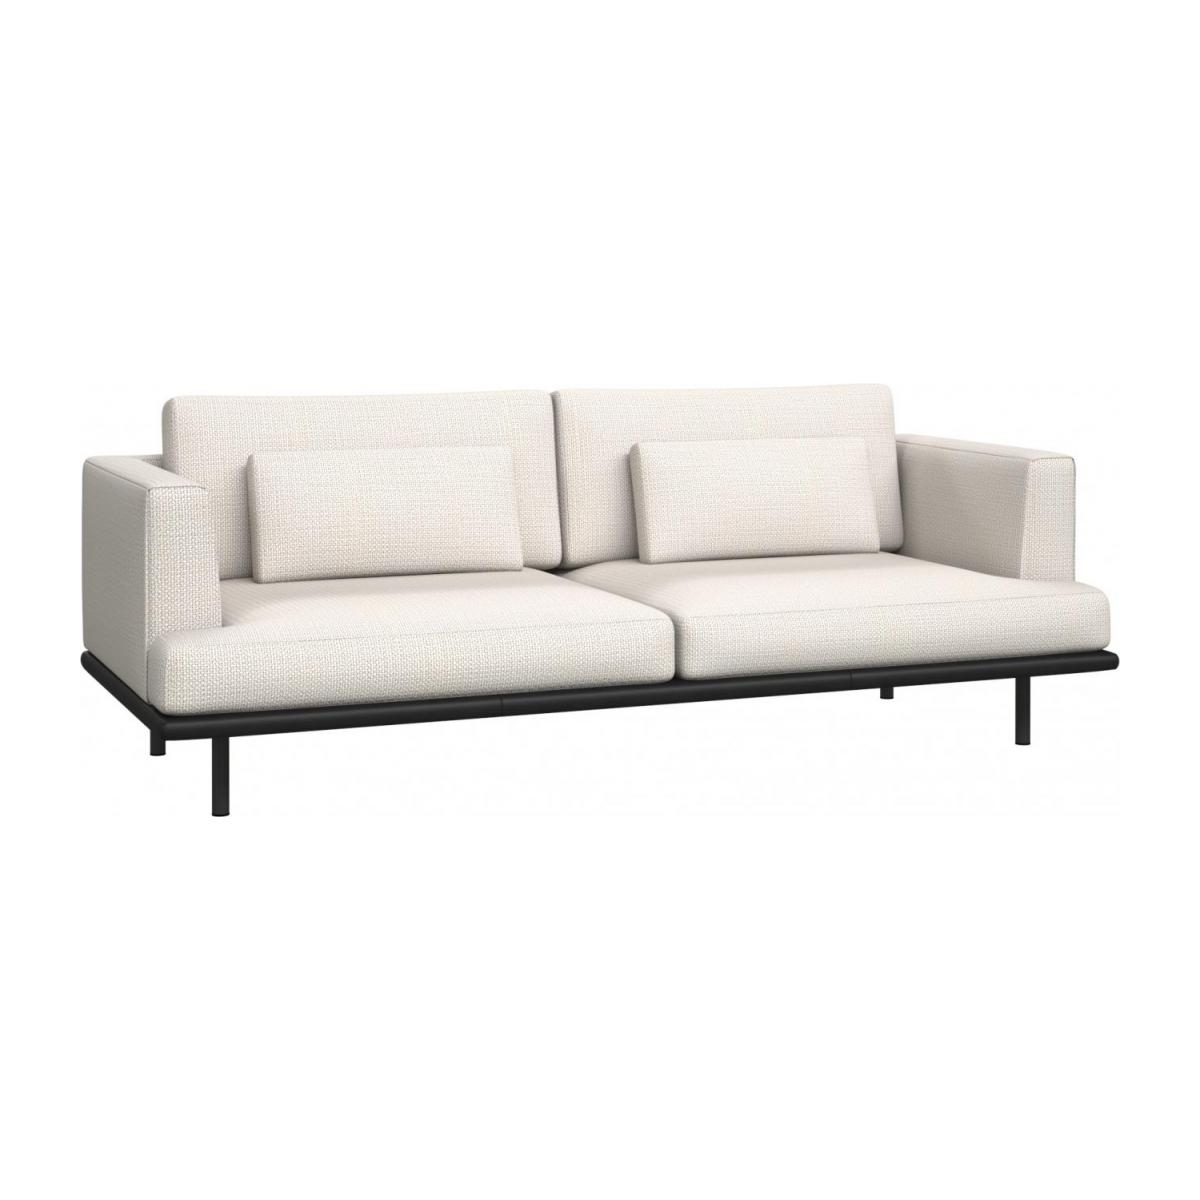 3 seater sofa in Fasoli fabric, snow white with base in black leather n°1